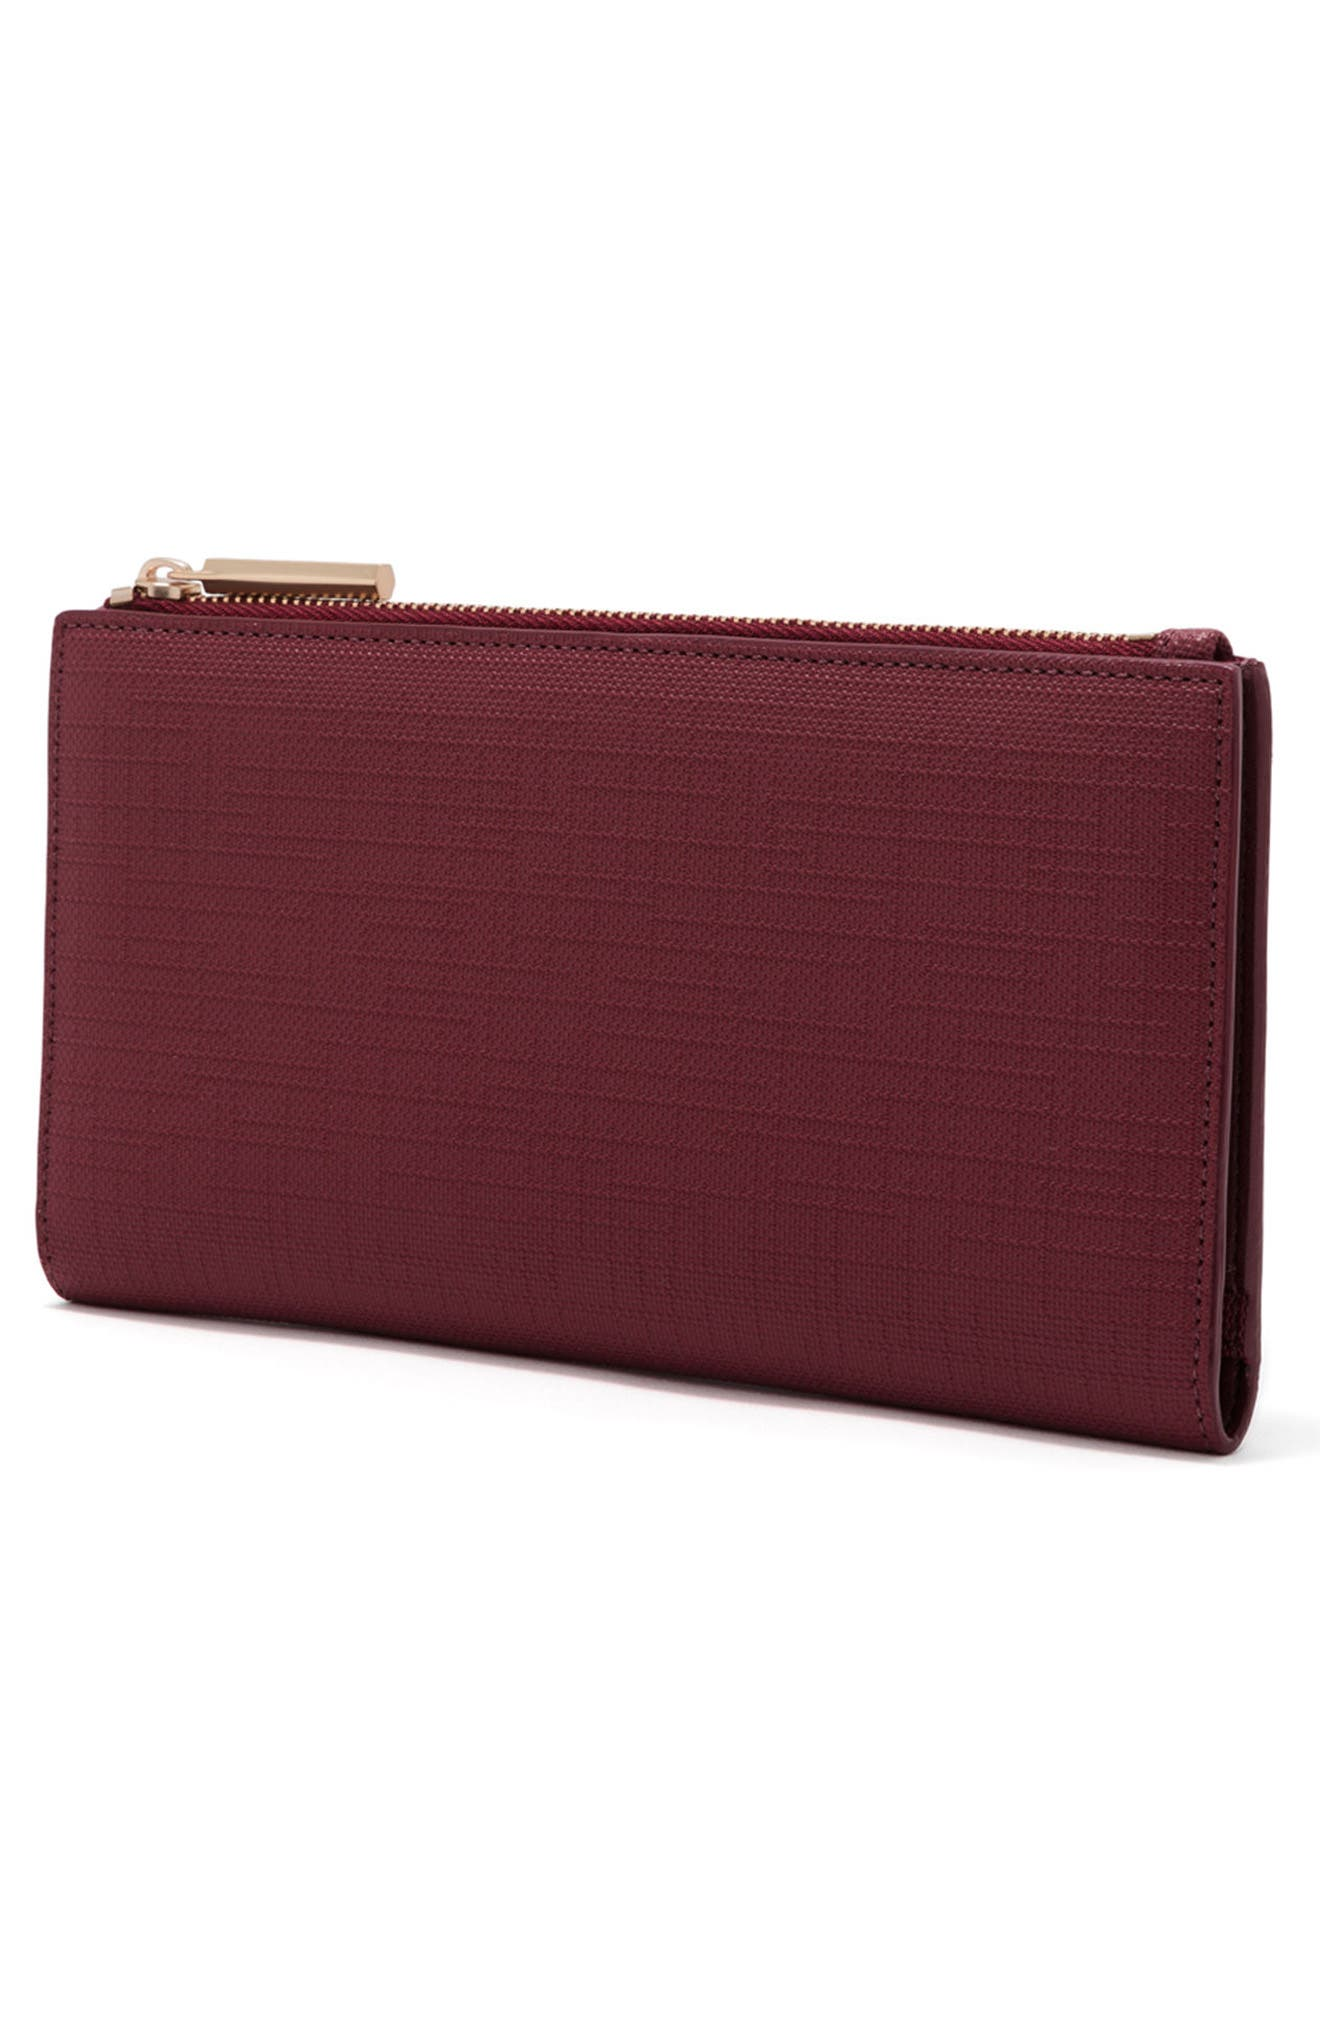 Signature Slim Coated Canvas Wallet,                             Alternate thumbnail 4, color,                             Syrah